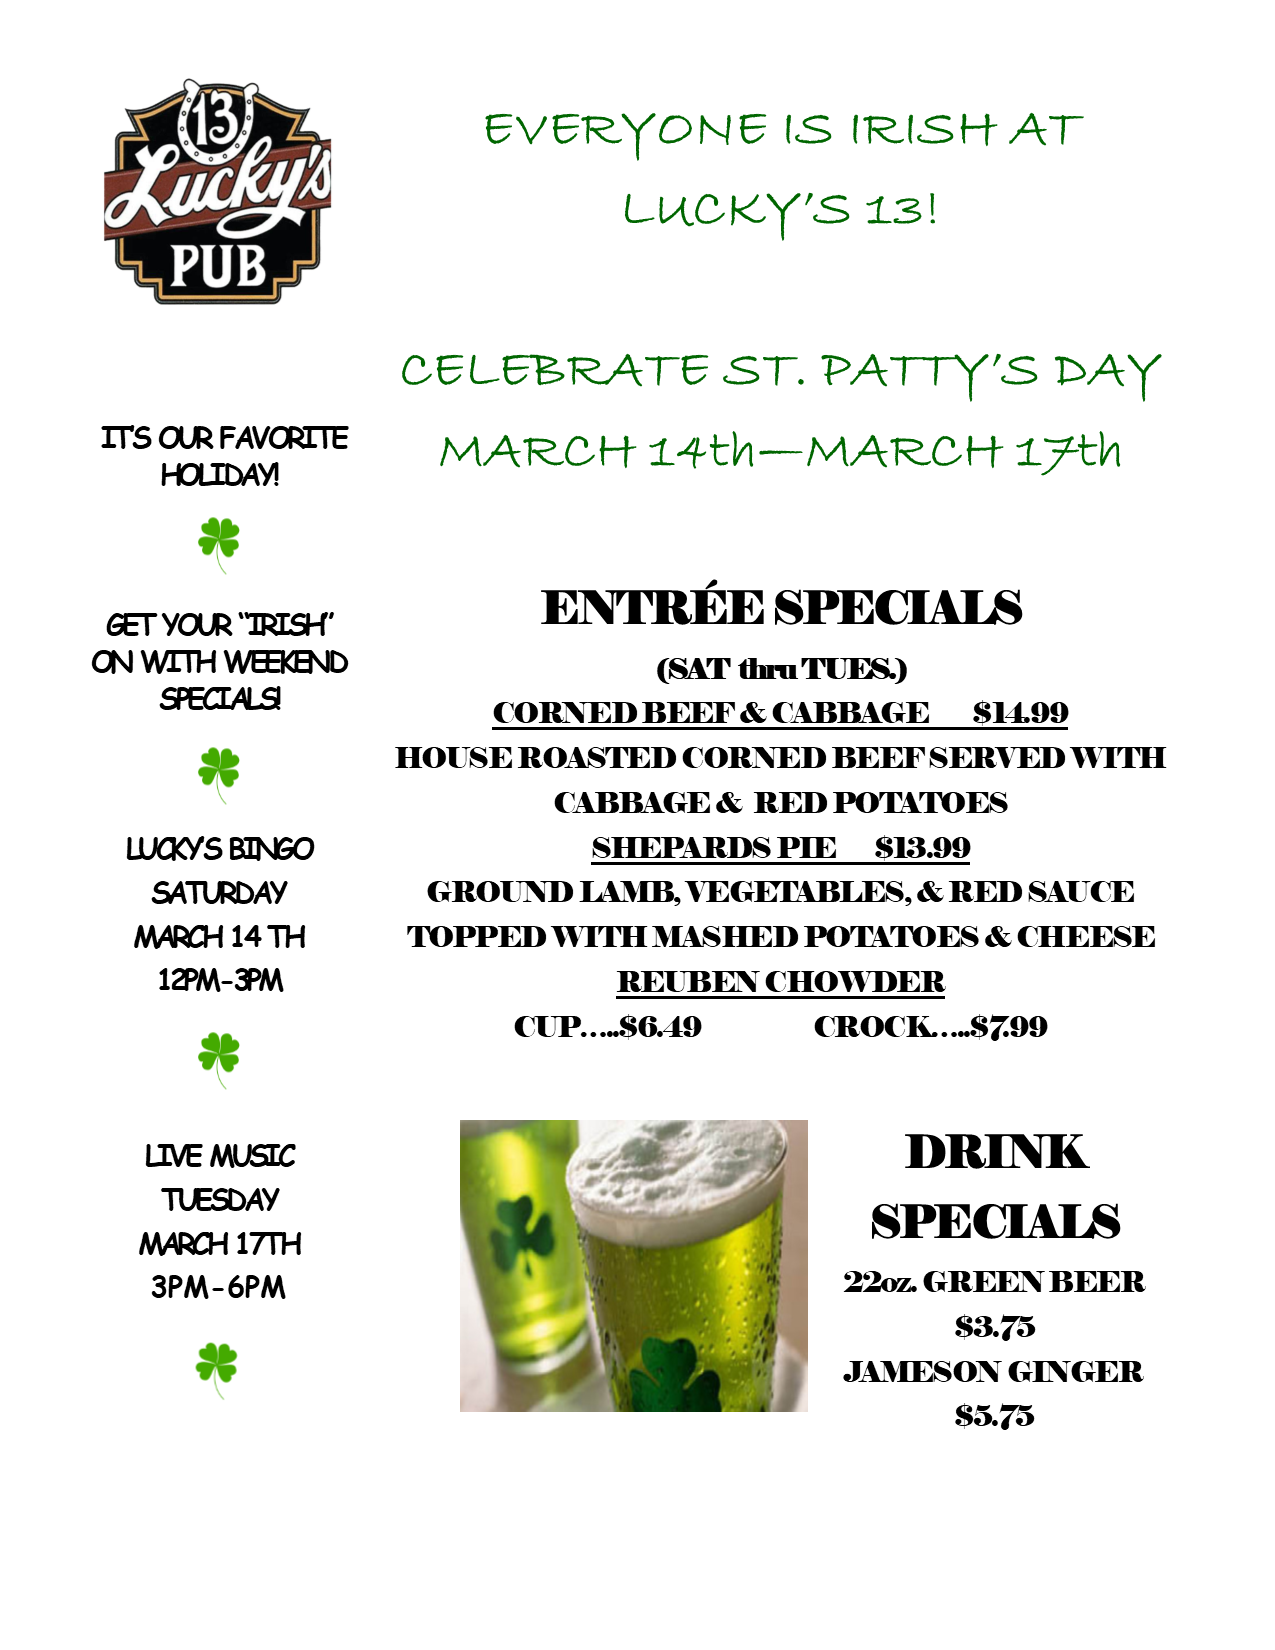 EVERYONE IS IRISH AT LUCKY'S 13!   CELEBRATE ST. PATTY'S DAY  MARCH 14th—MARCH 17th  ENTRÉE SPECIALS (SAT  thru TUES.) CORNED BEEF & CABBAGE        $14.99 HOUSE ROASTED CORNED BEEF SERVED WITH CABBAGE &  RED POTATOES SHEPARDS PIE       $13.99 GROUND LAMB, VEGETABLES, & RED SAUCE TOPPED WITH MASHED POTATOES & CHEESE  REUBEN CHOWDER CUP…..$6.49		CROCK…..$7.99  DRINK  SPECIALS 22oz. GREEN BEER     $3.75 JAMESON GINGER     $5.75